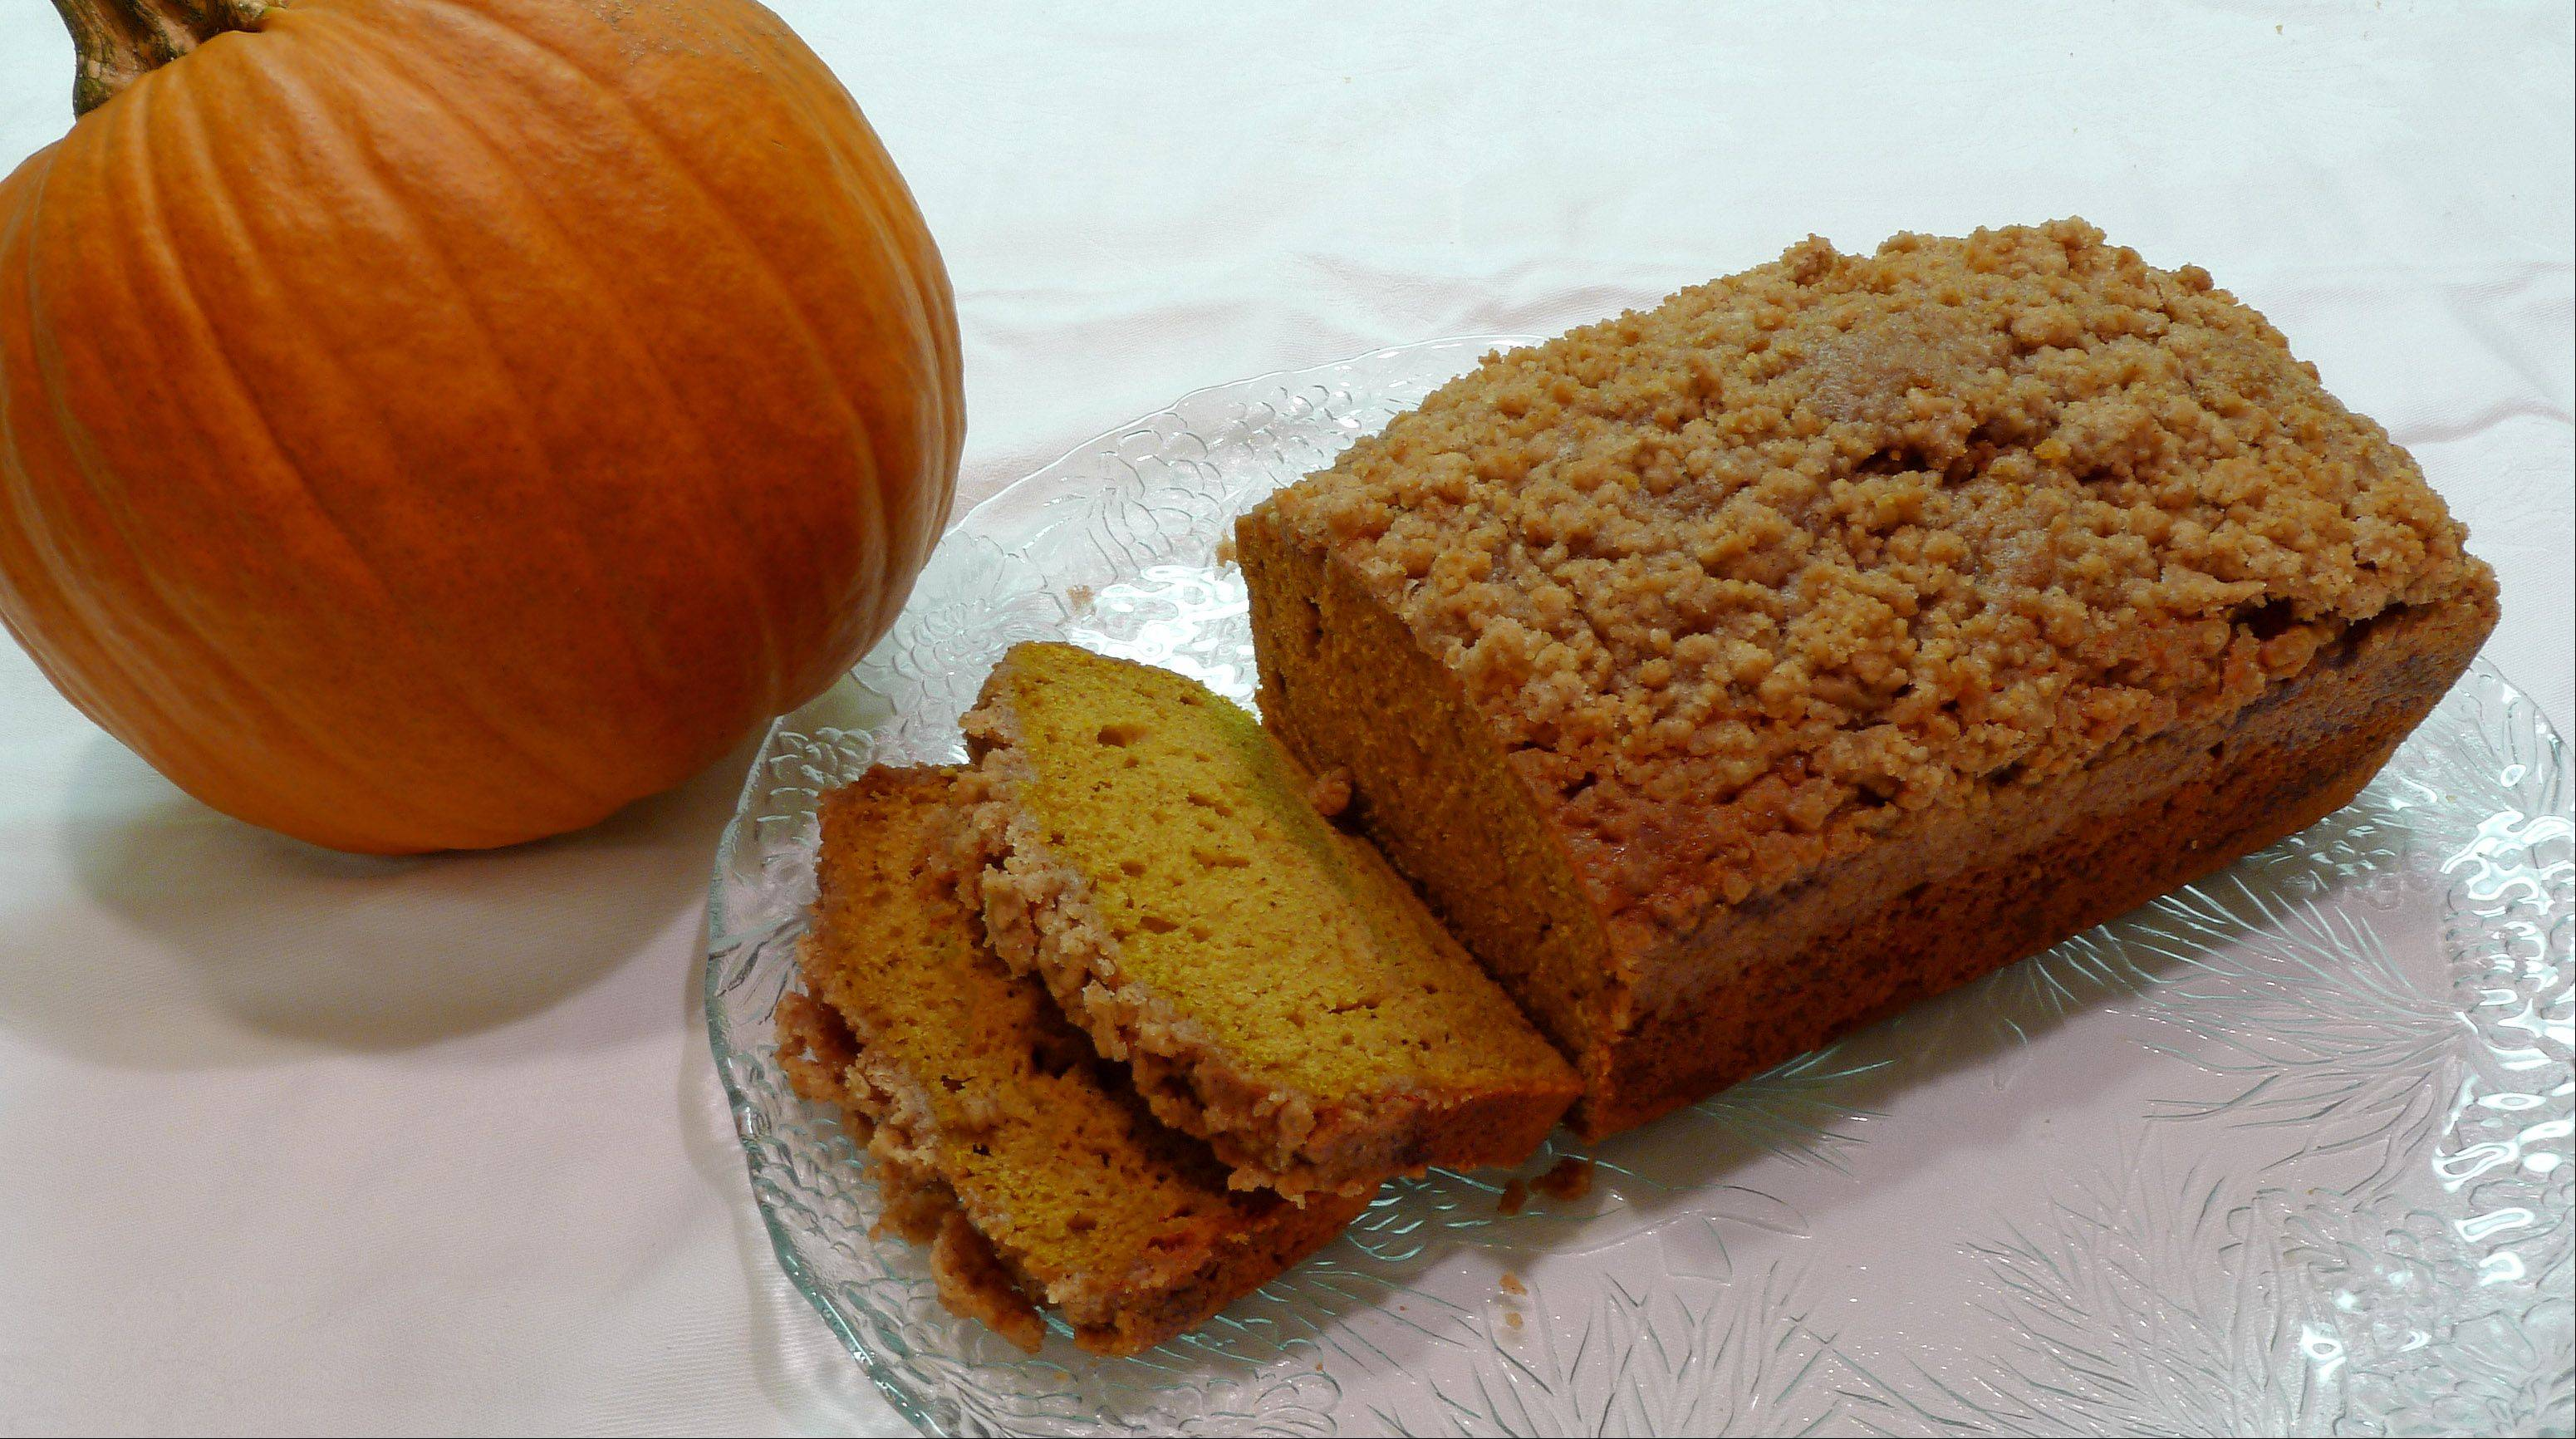 Pumpkin ale makes quick bread more savory